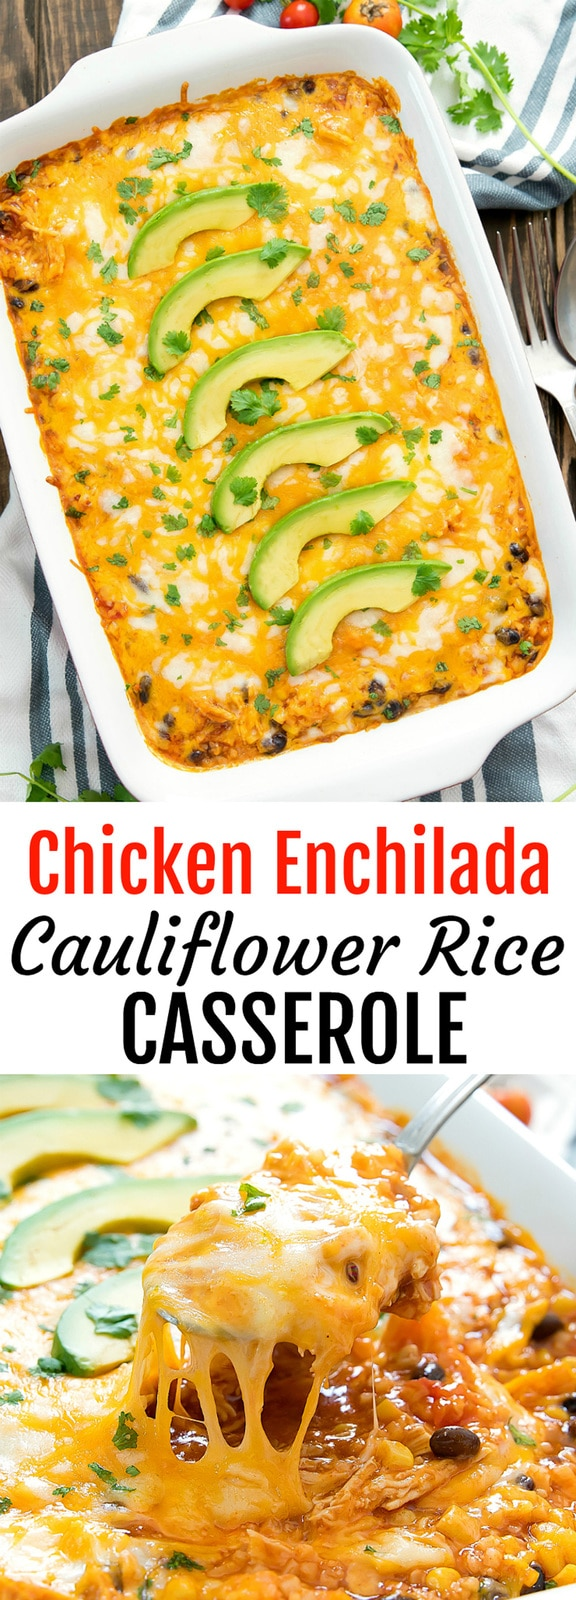 Chicken Enchilada RIce Casserole. A lightened up version of enchilada rice casserole, replacing rice with cauliflower rice. This easy dish is ready in less than an hour!